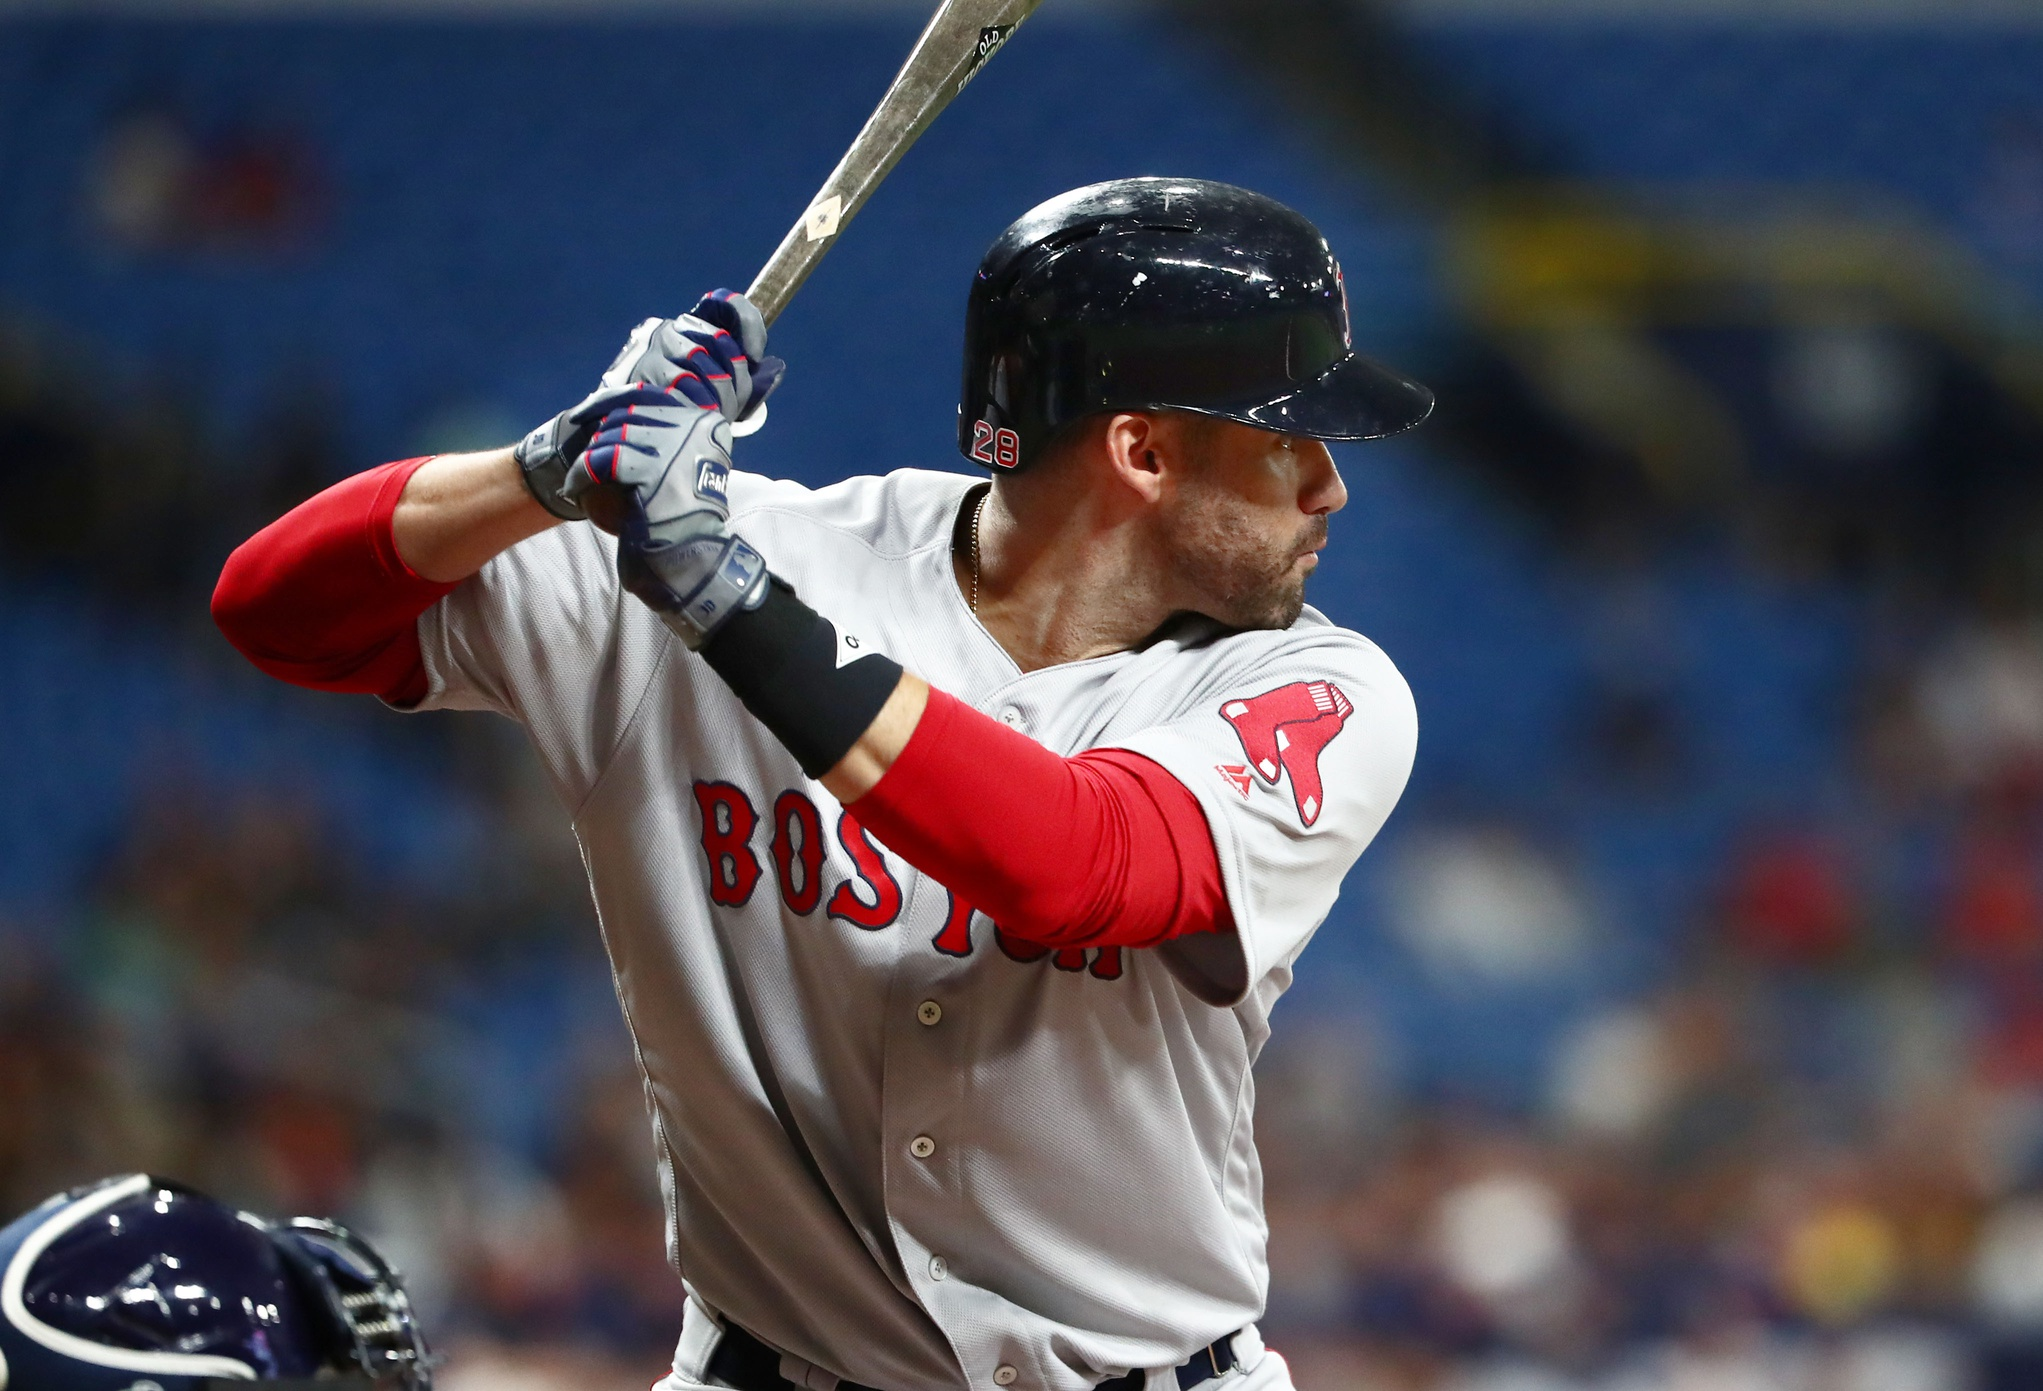 The Sunday Baseball Column: How should we view J.D. Martinez?